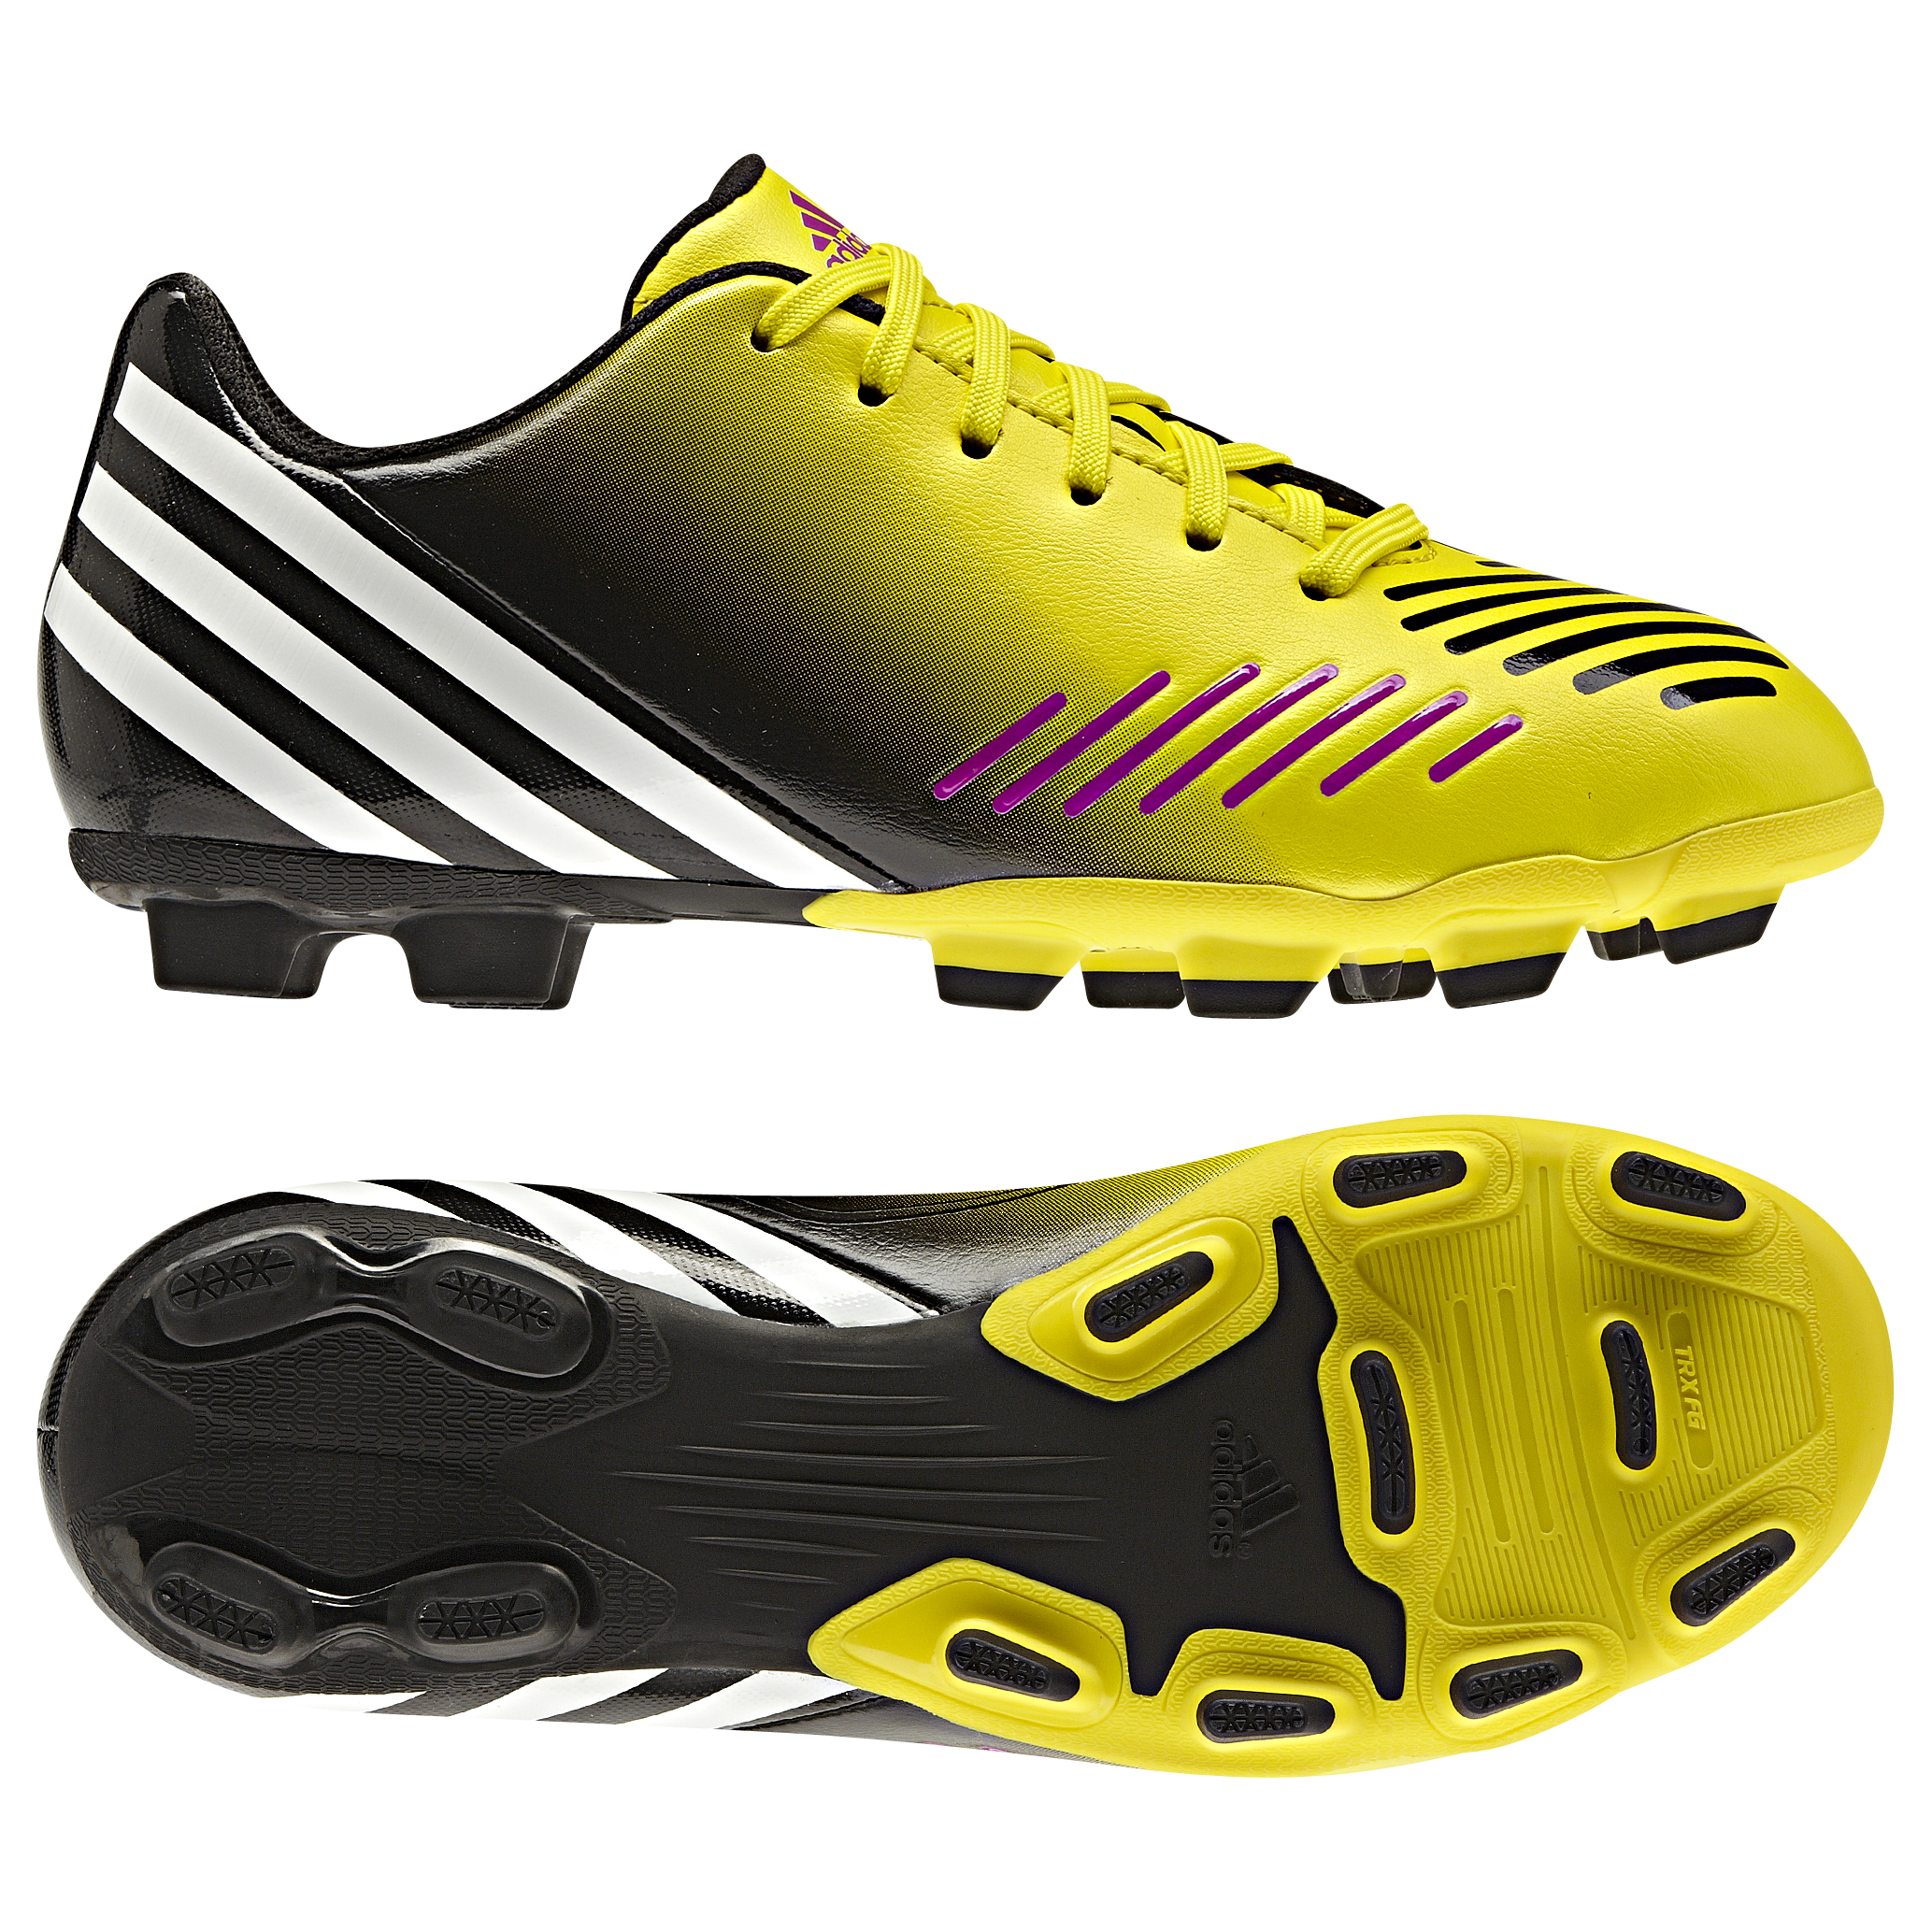 adidas Predito LZ TRX Firm Ground  Football Boots - Vivid Yellow/Running White/Black - Kids